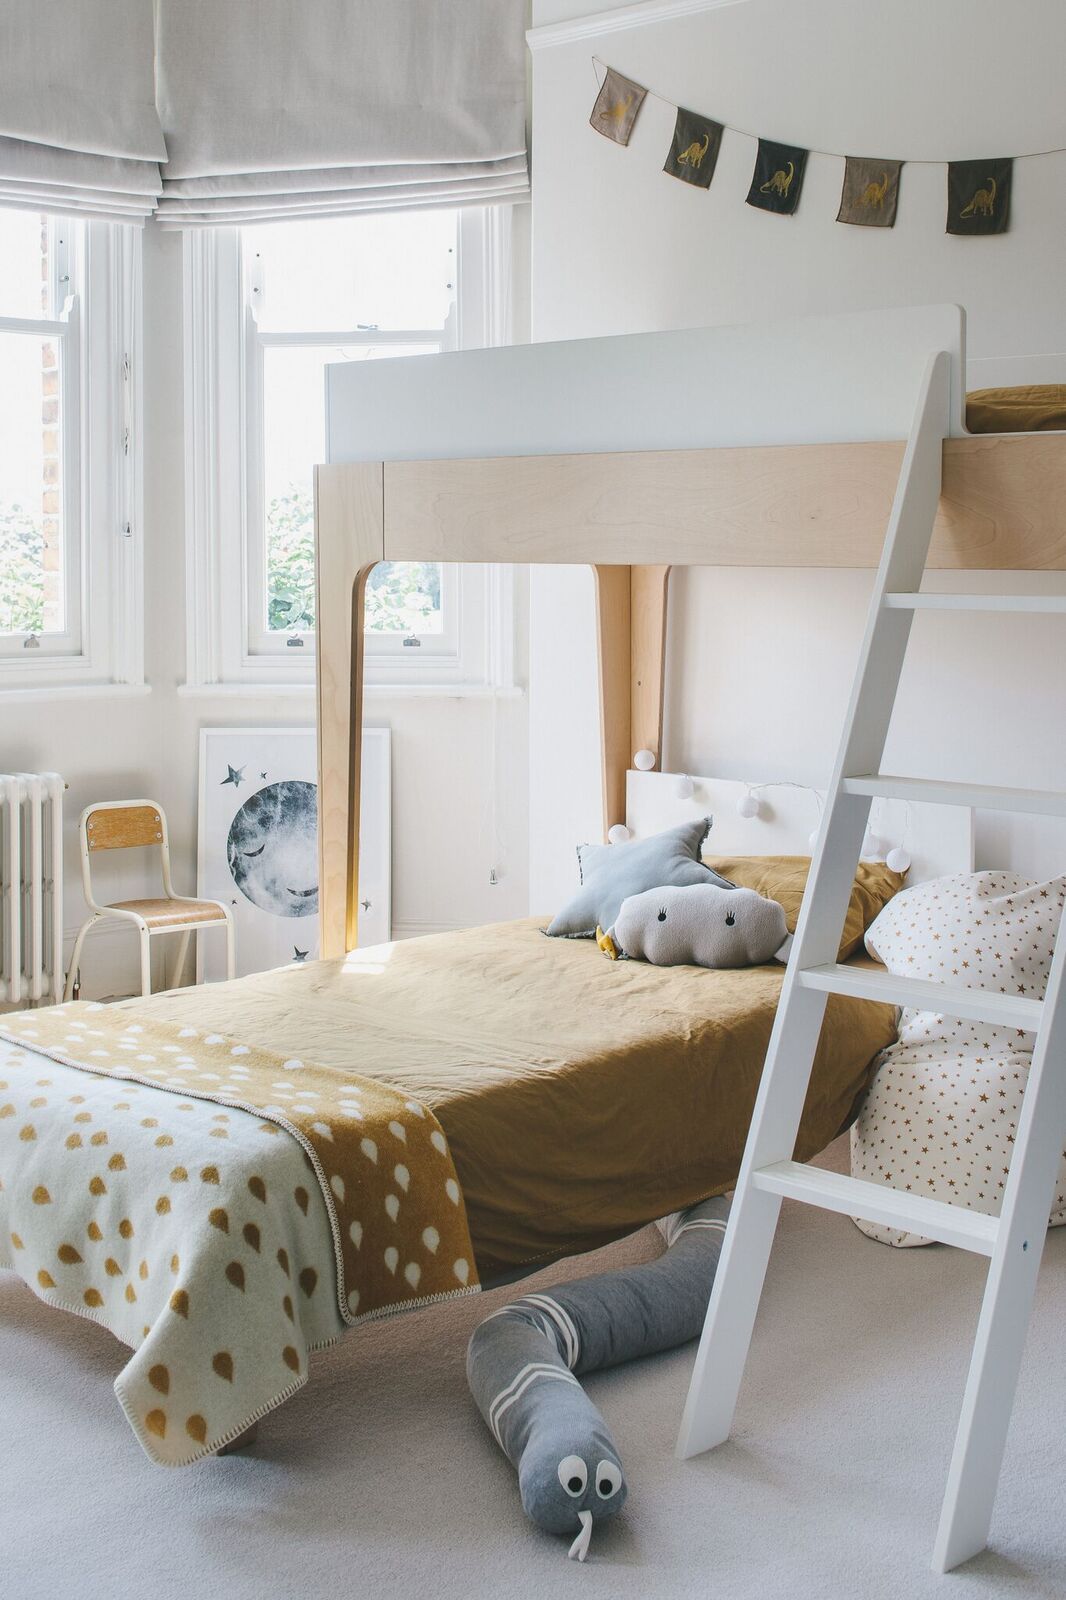 Transitioning to a big kid room